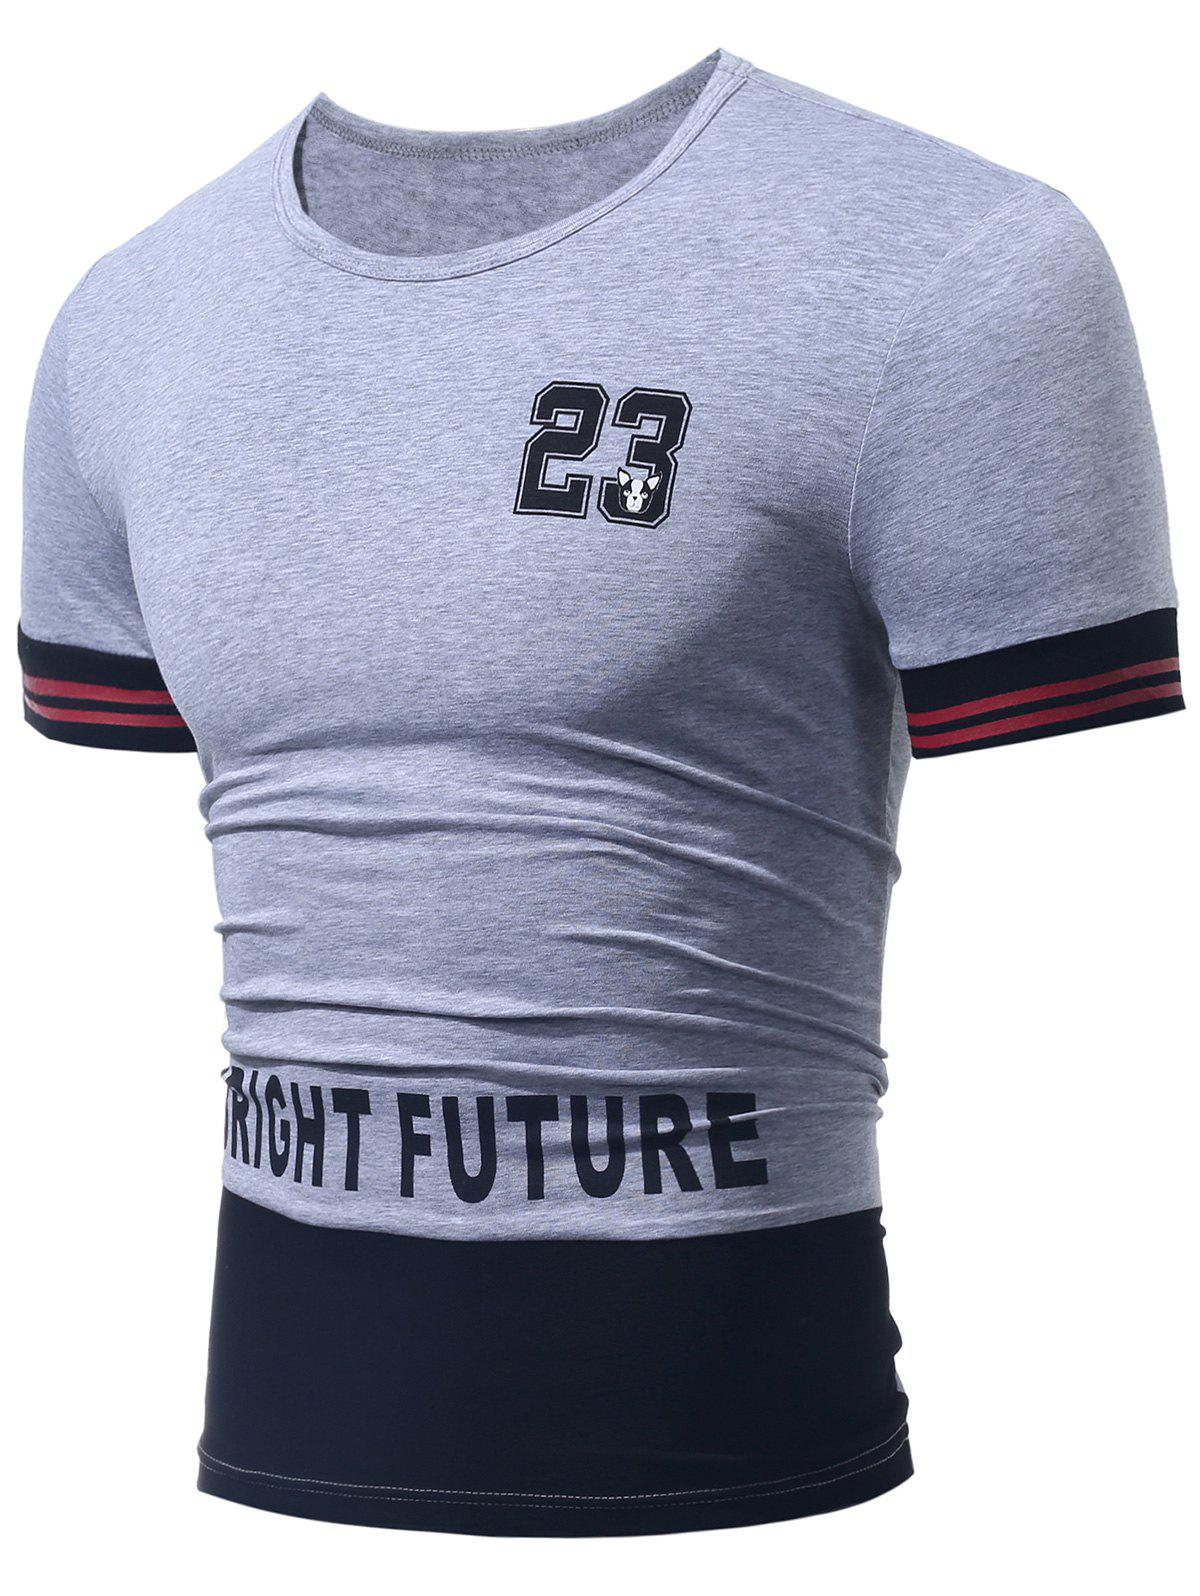 Color Block 23 Graphic Printed Tee